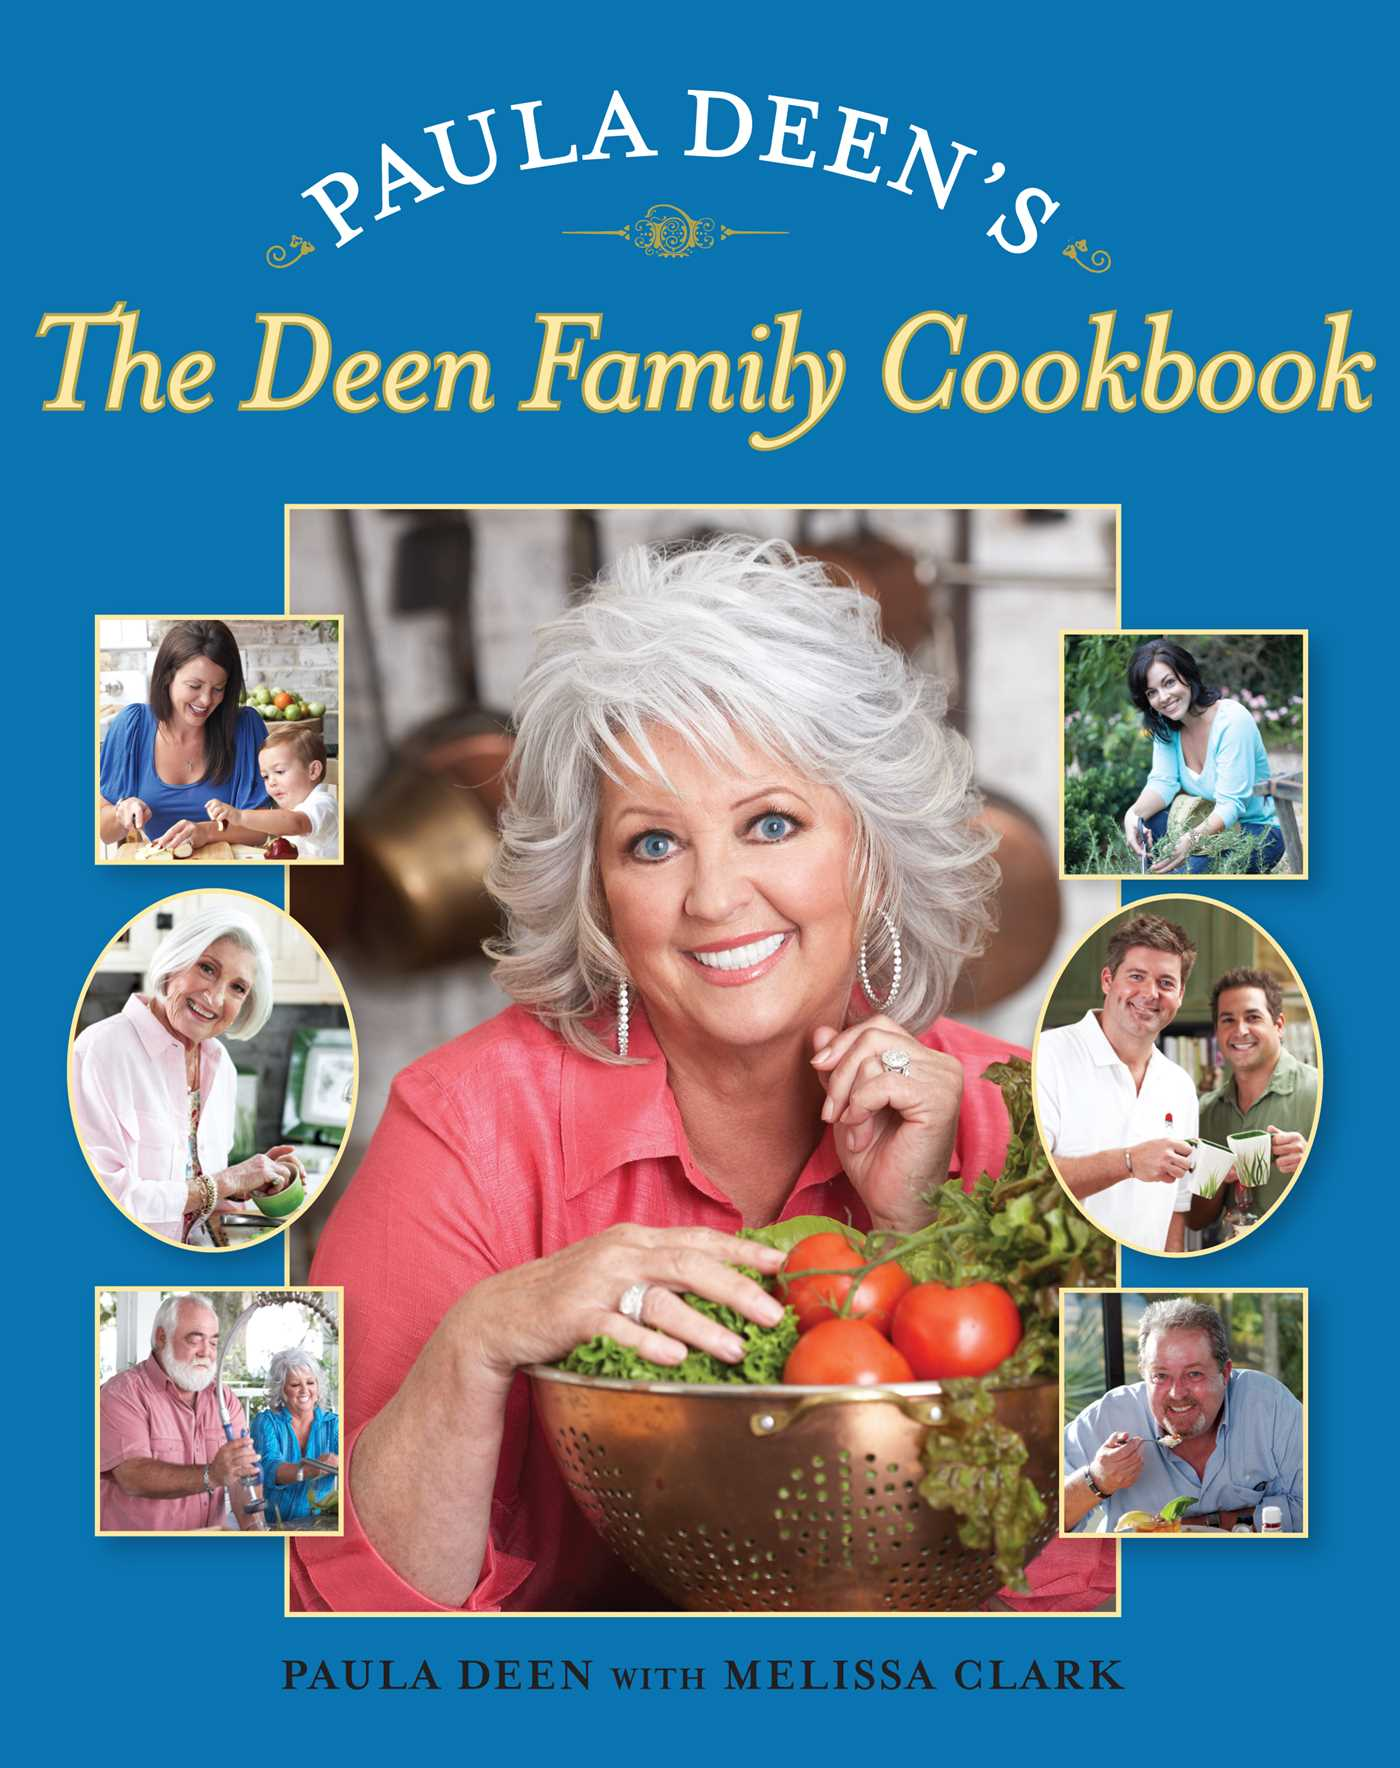 Paula deens the deen family cookbook 9781439159231 hr